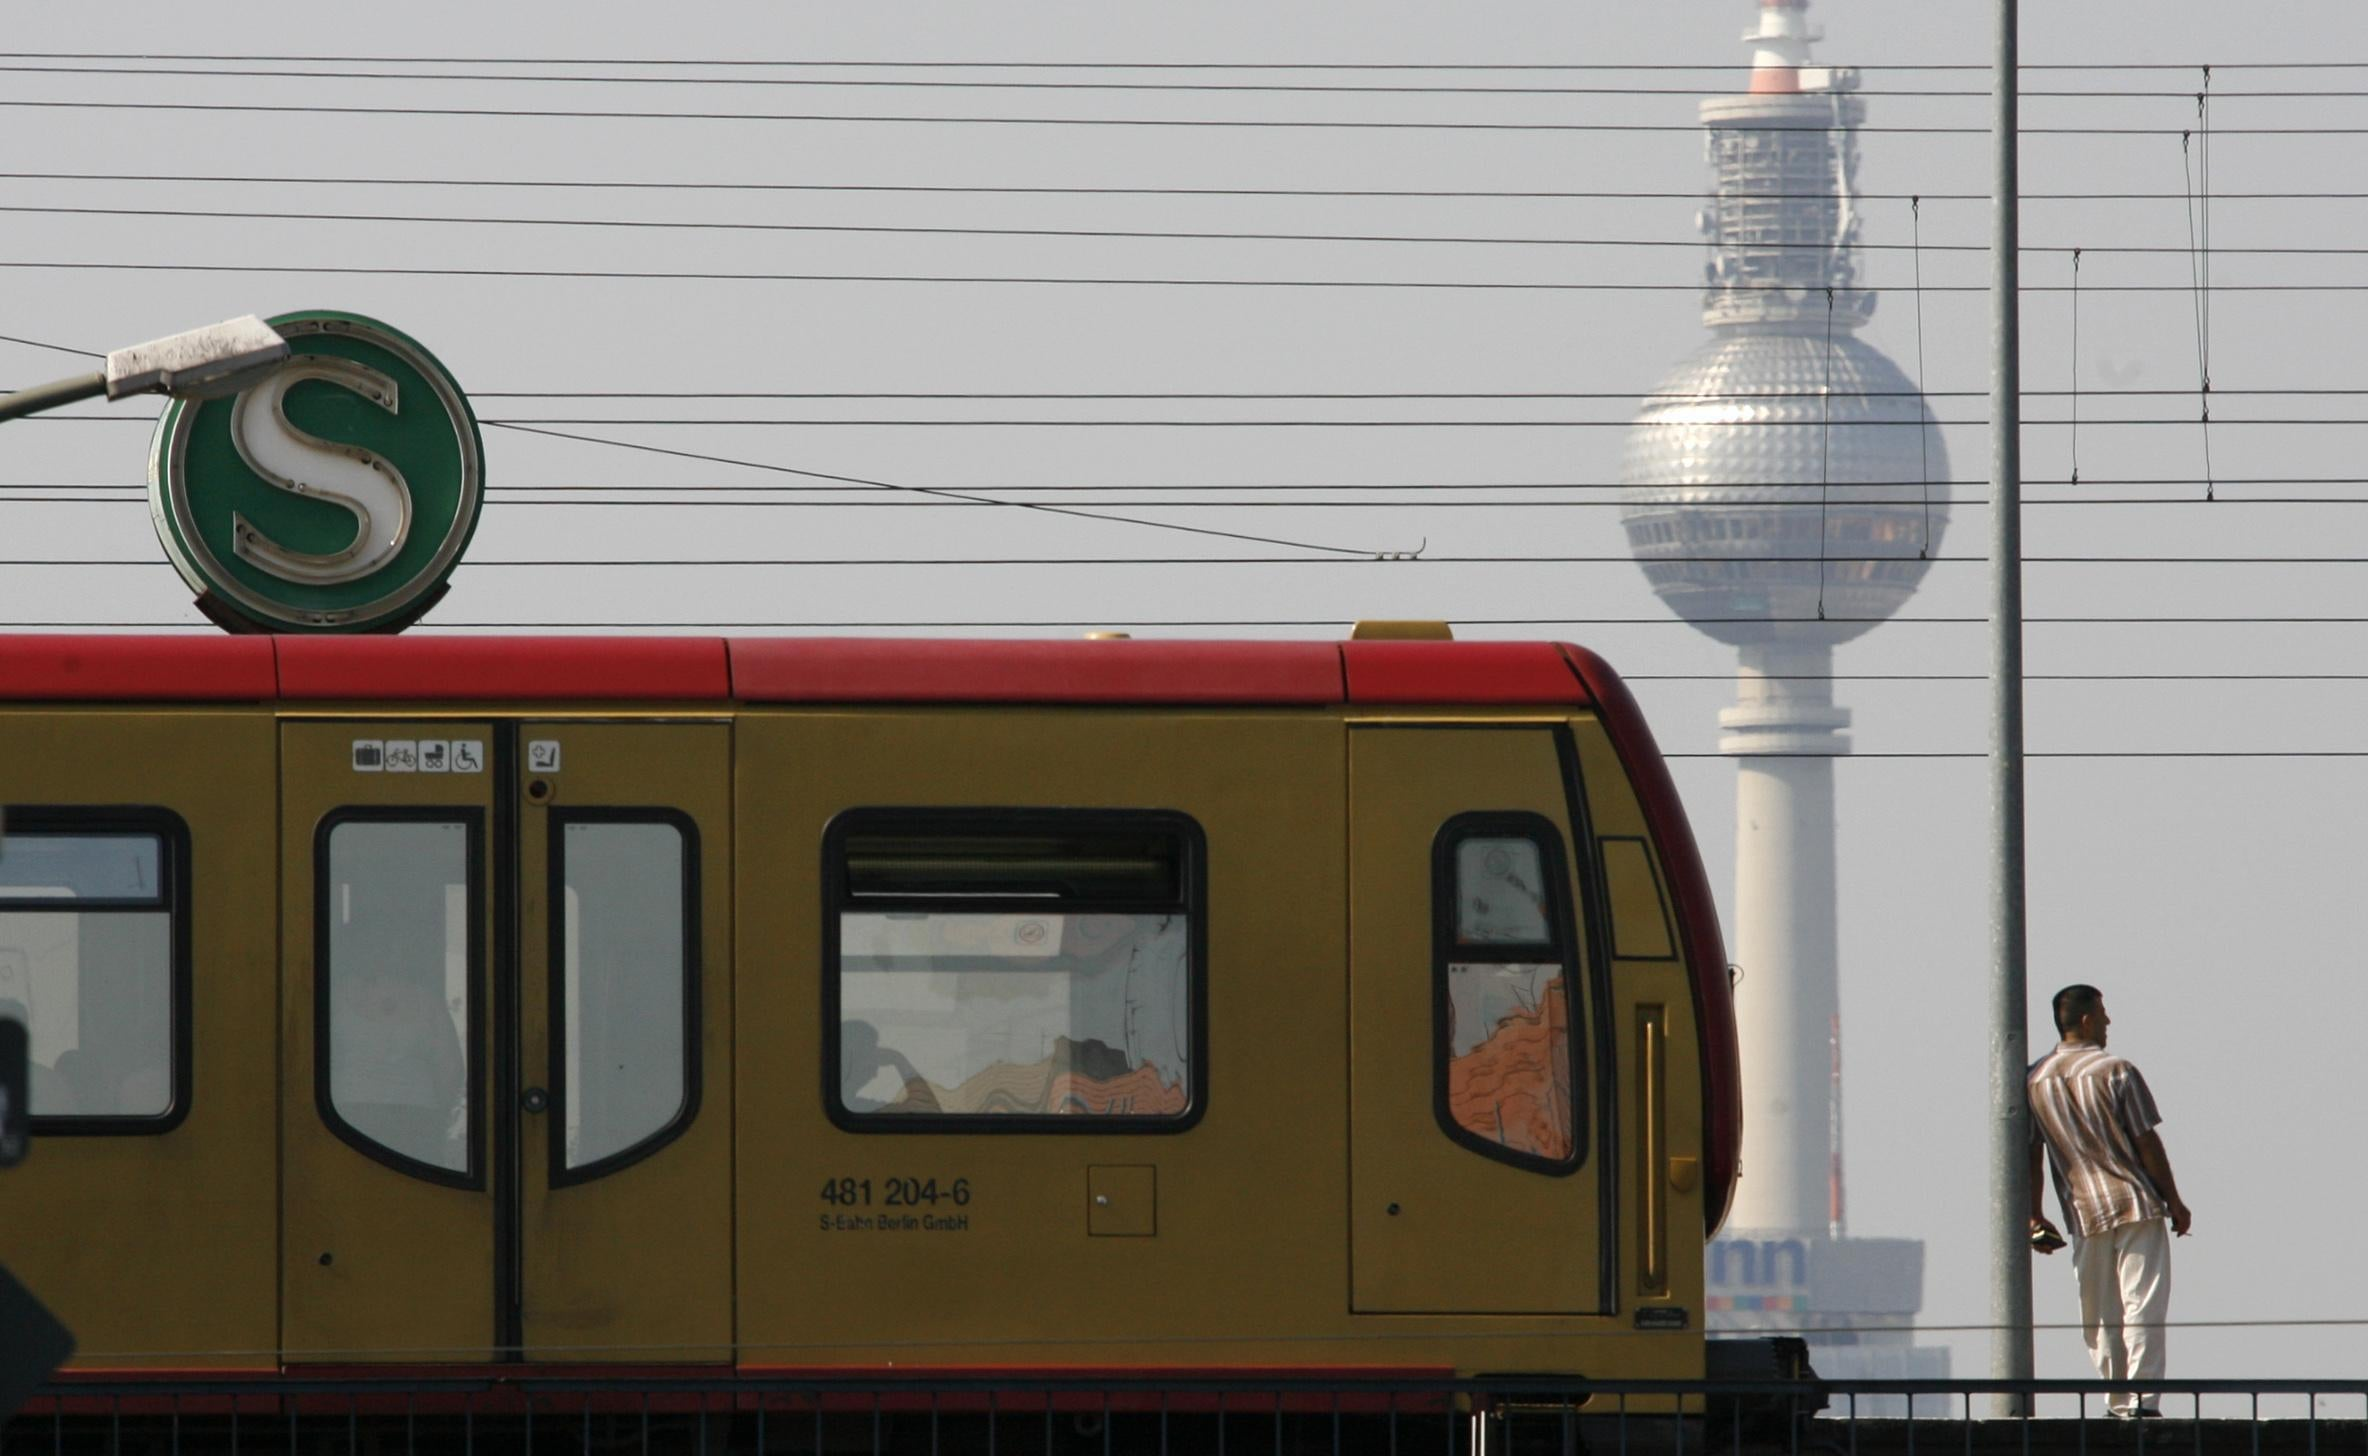 Germany plans to trial free public transport in cities suffering from air pollution